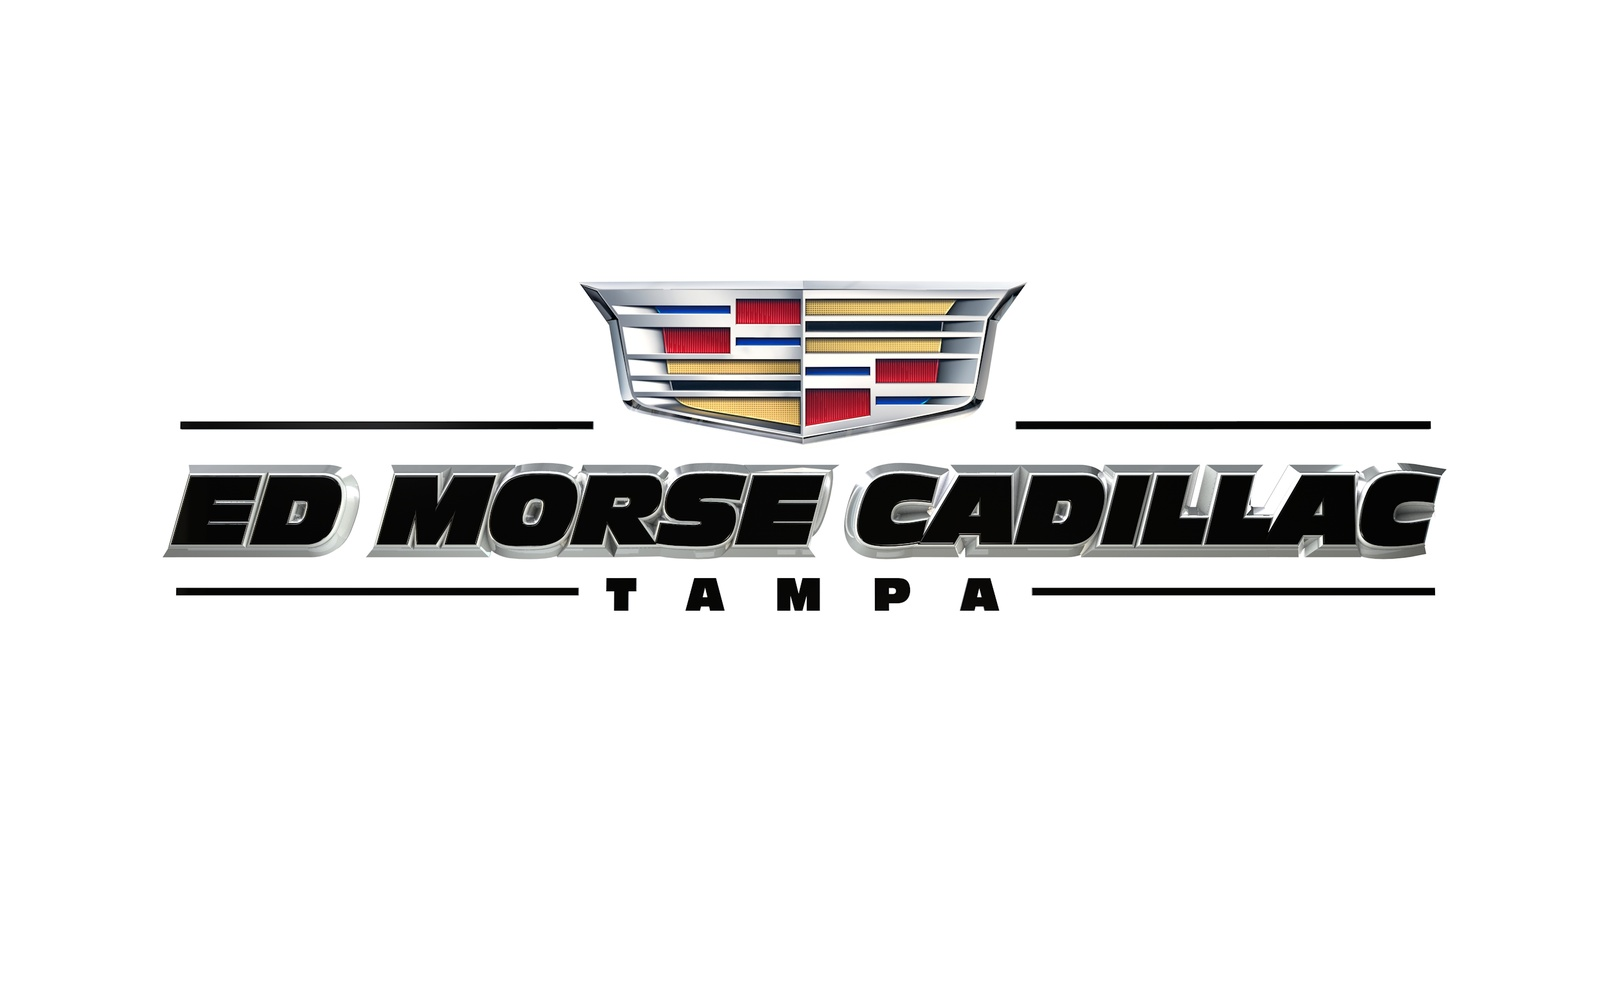 Ed Morse Cadillac Tampa - Tampa, FL: Read Consumer reviews, Browse